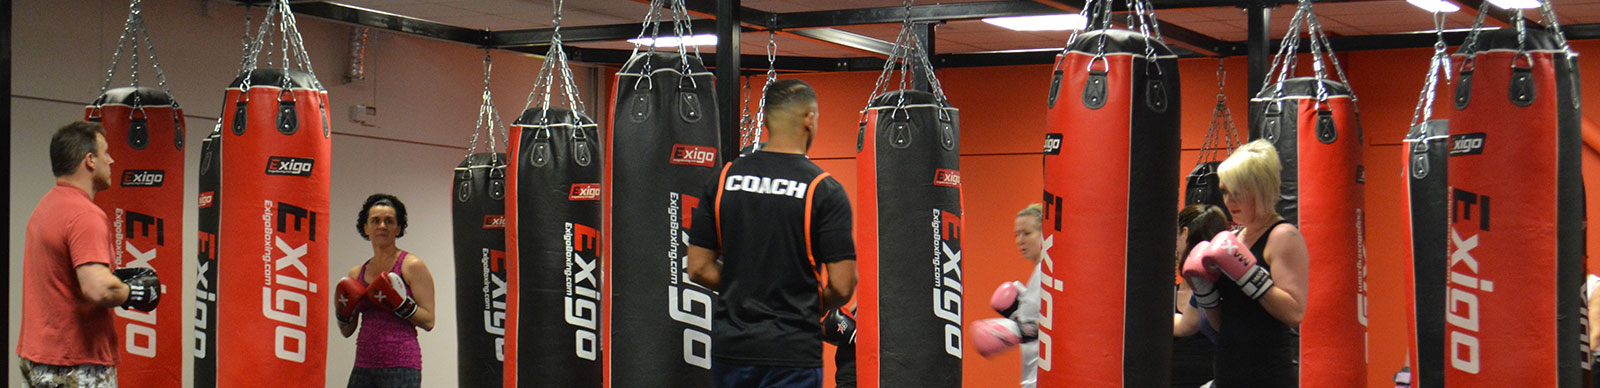 High intensity, non-contact boxing sessions for any level of fitness